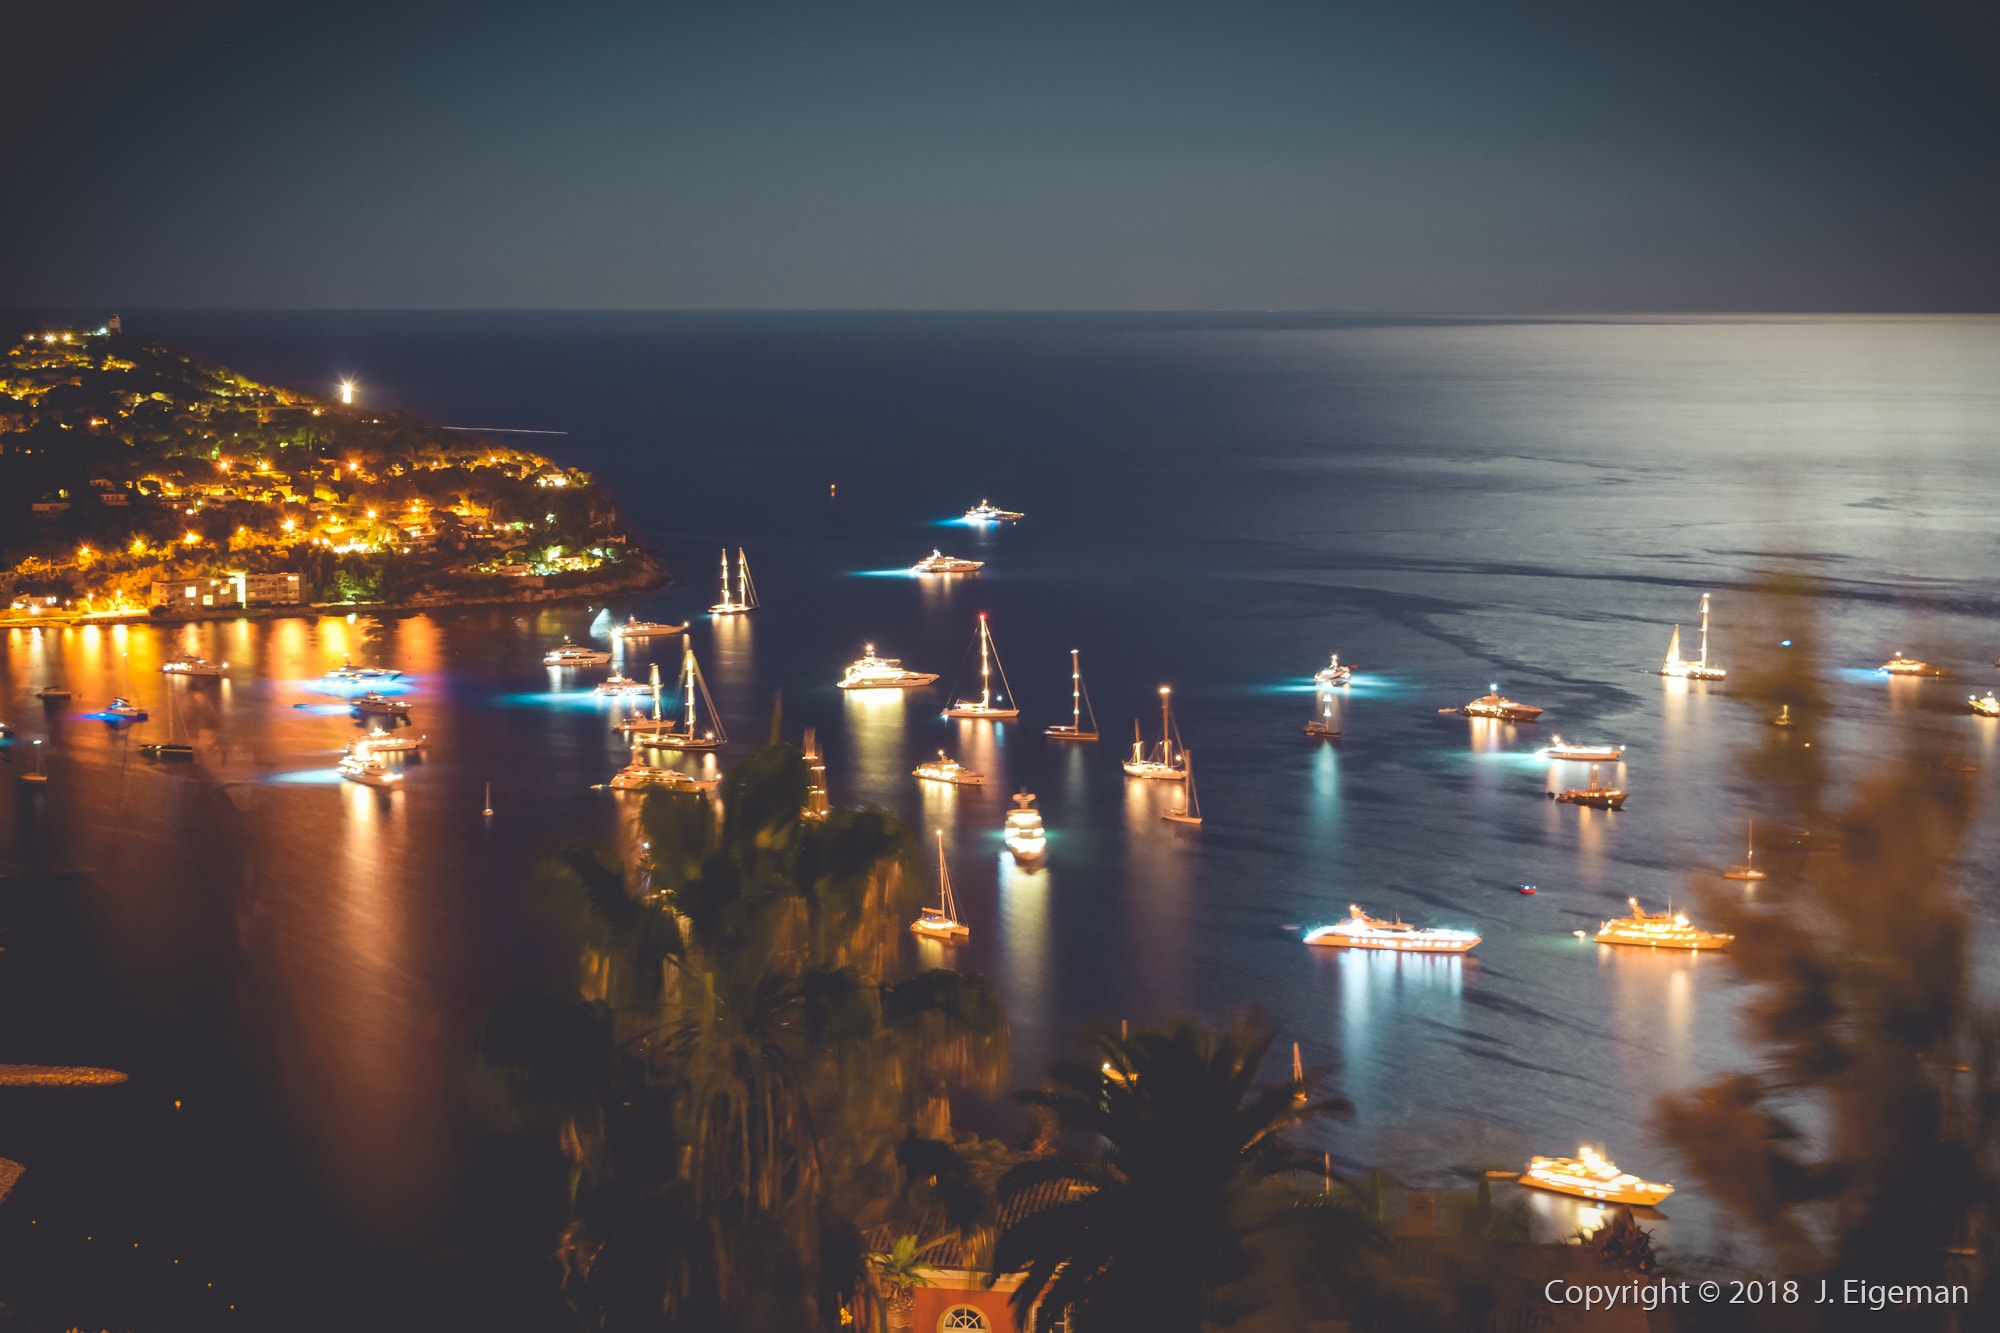 Cote d'Azur night cityscape and harbour Photography - Jeoffrey Eigeman (1)